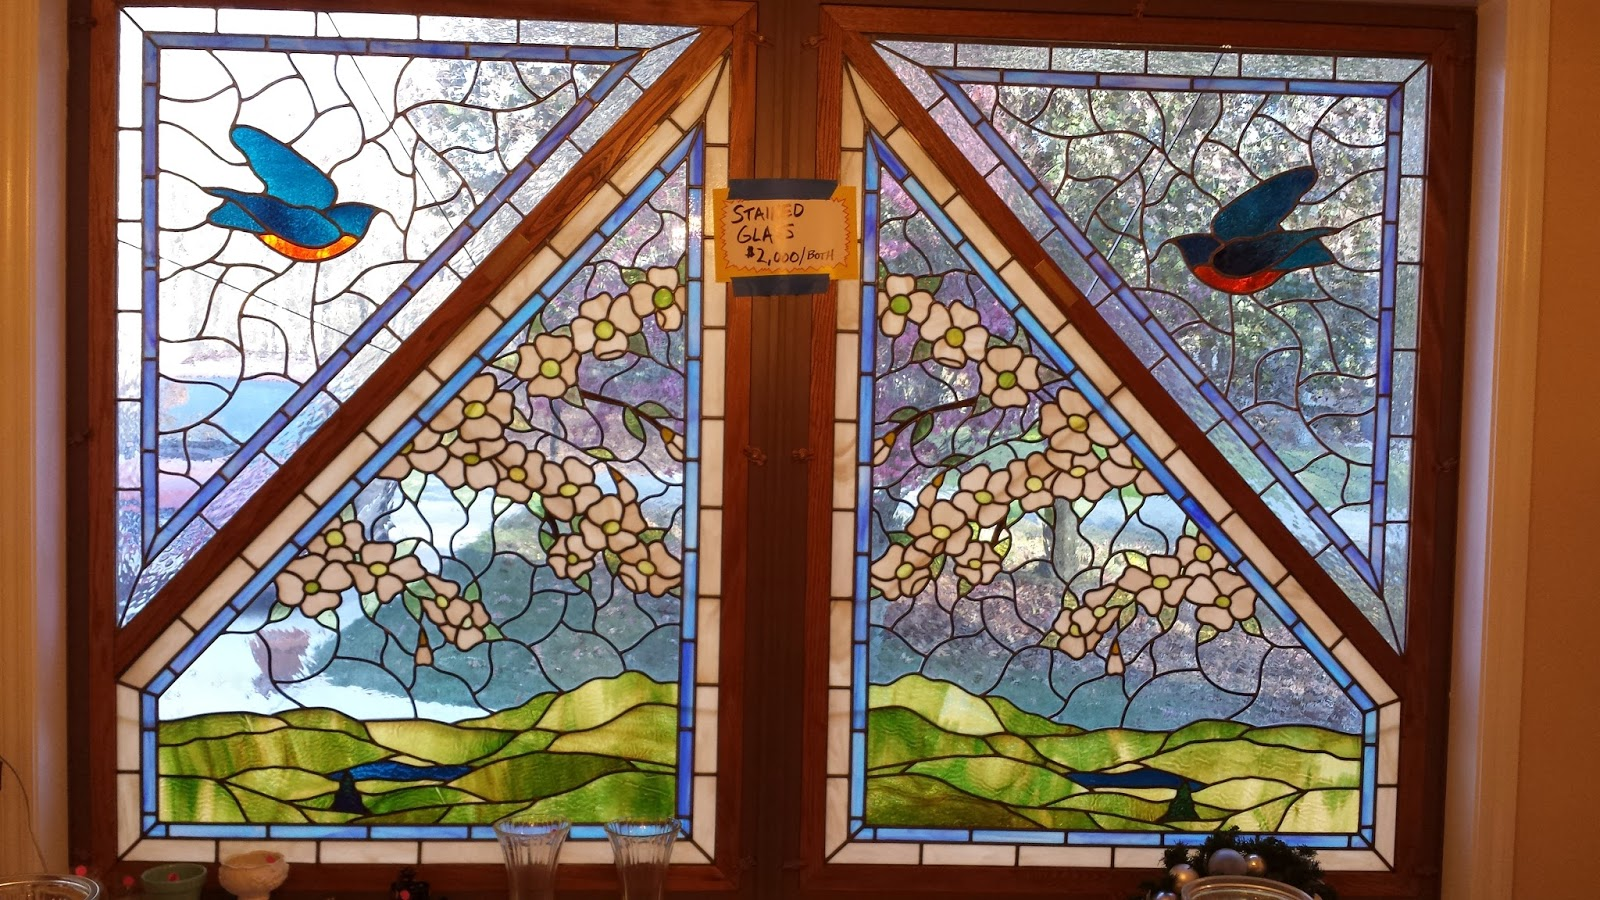 Windows On Sale Mays Sales Gorgeous Large Stained Glass Windows For Sale